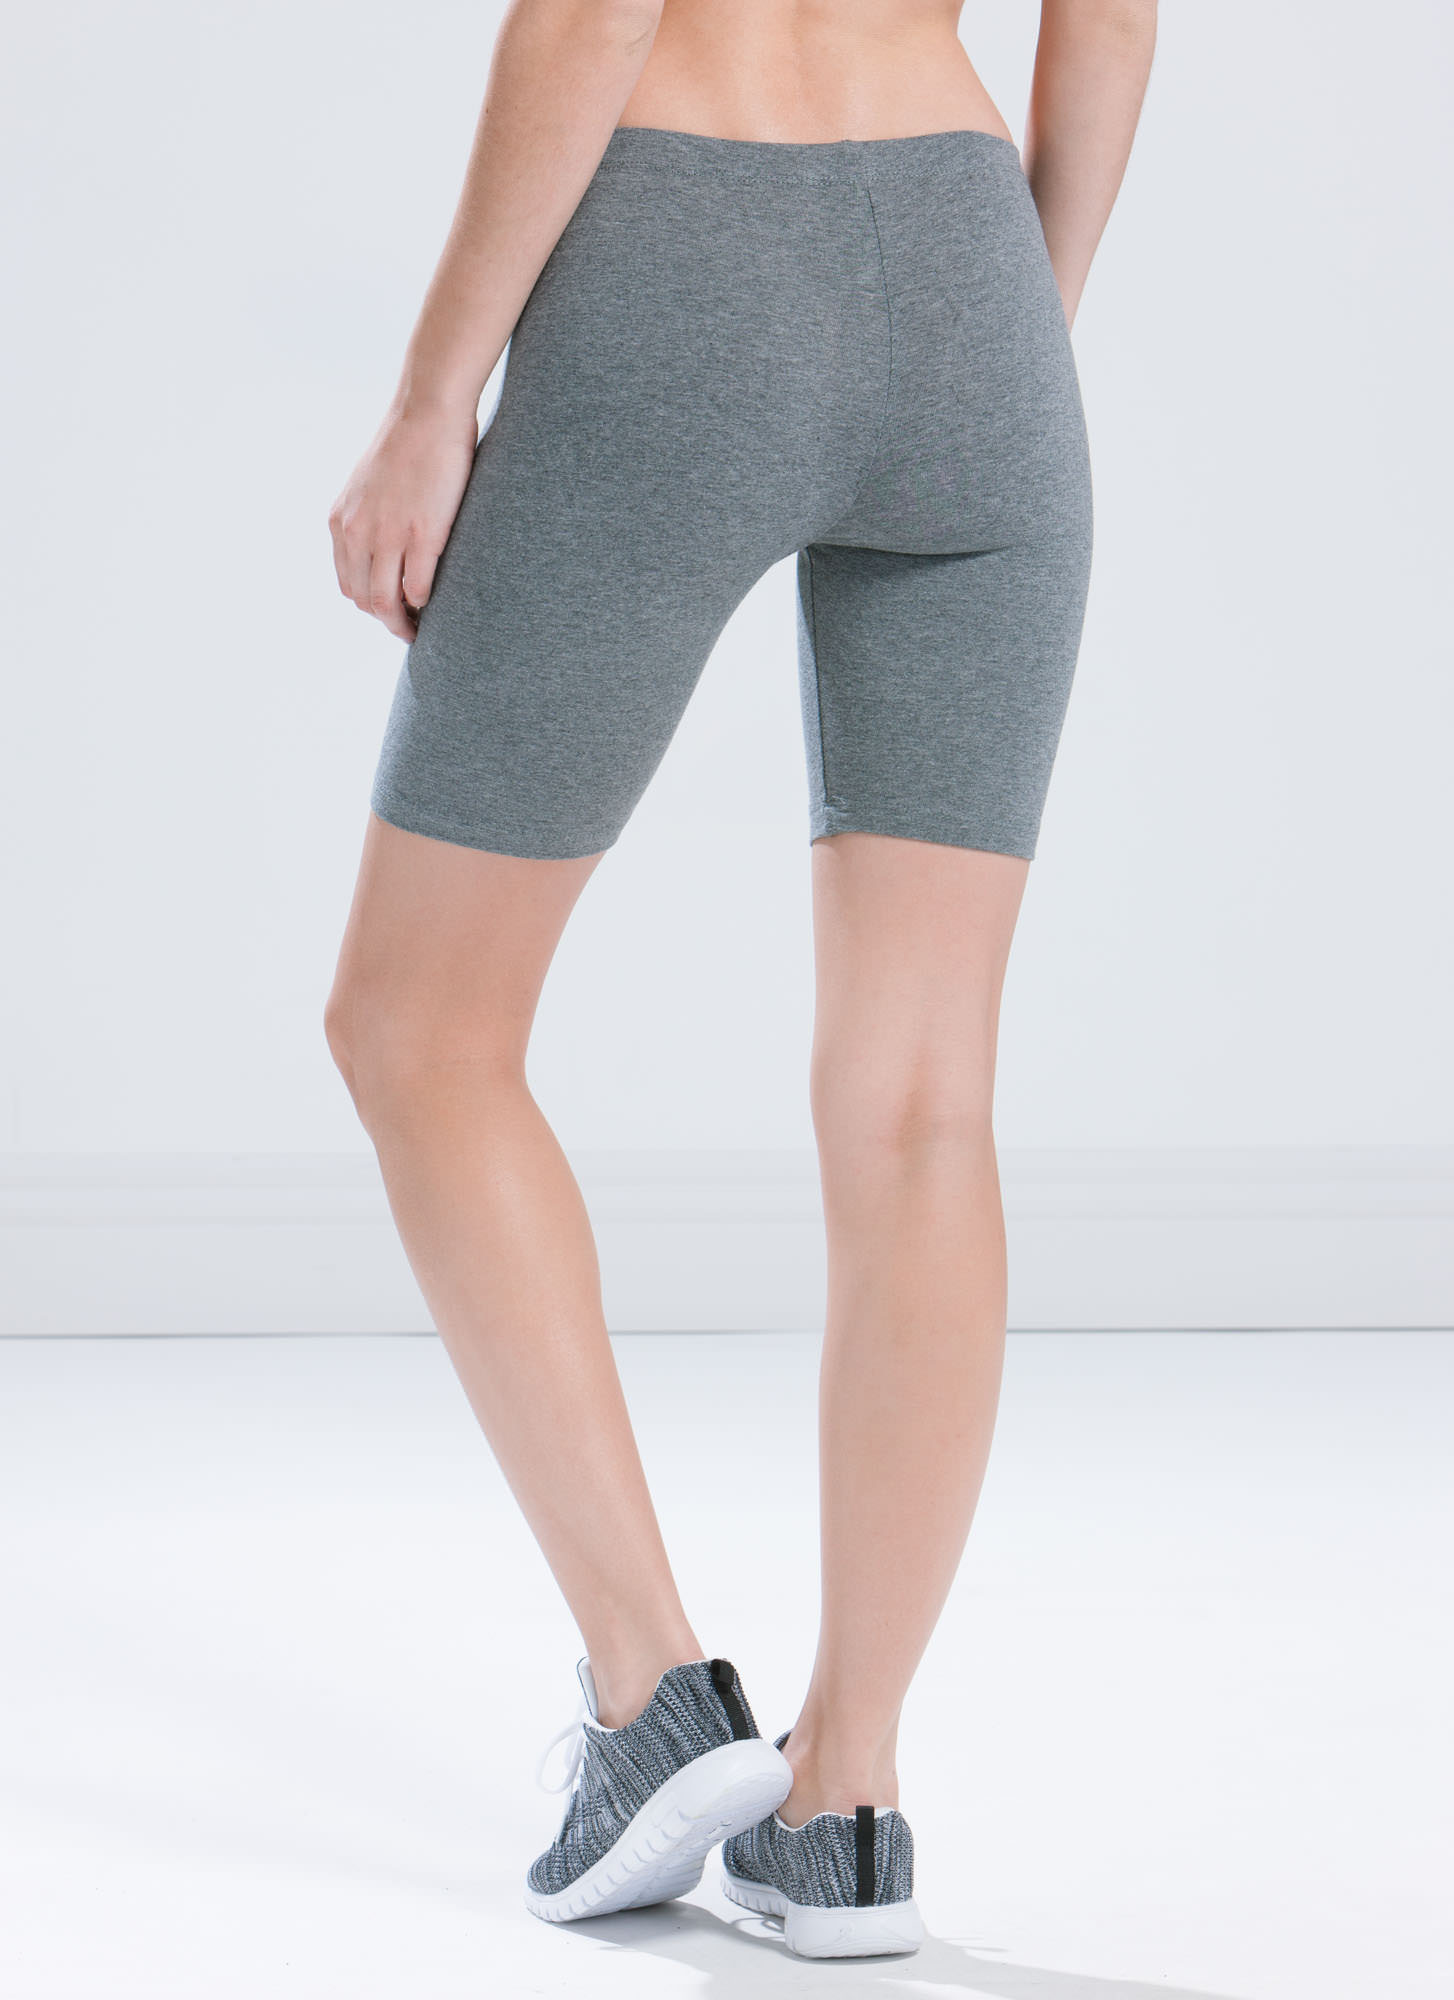 Do Me A Solid Stretchy Biker Shorts GREY